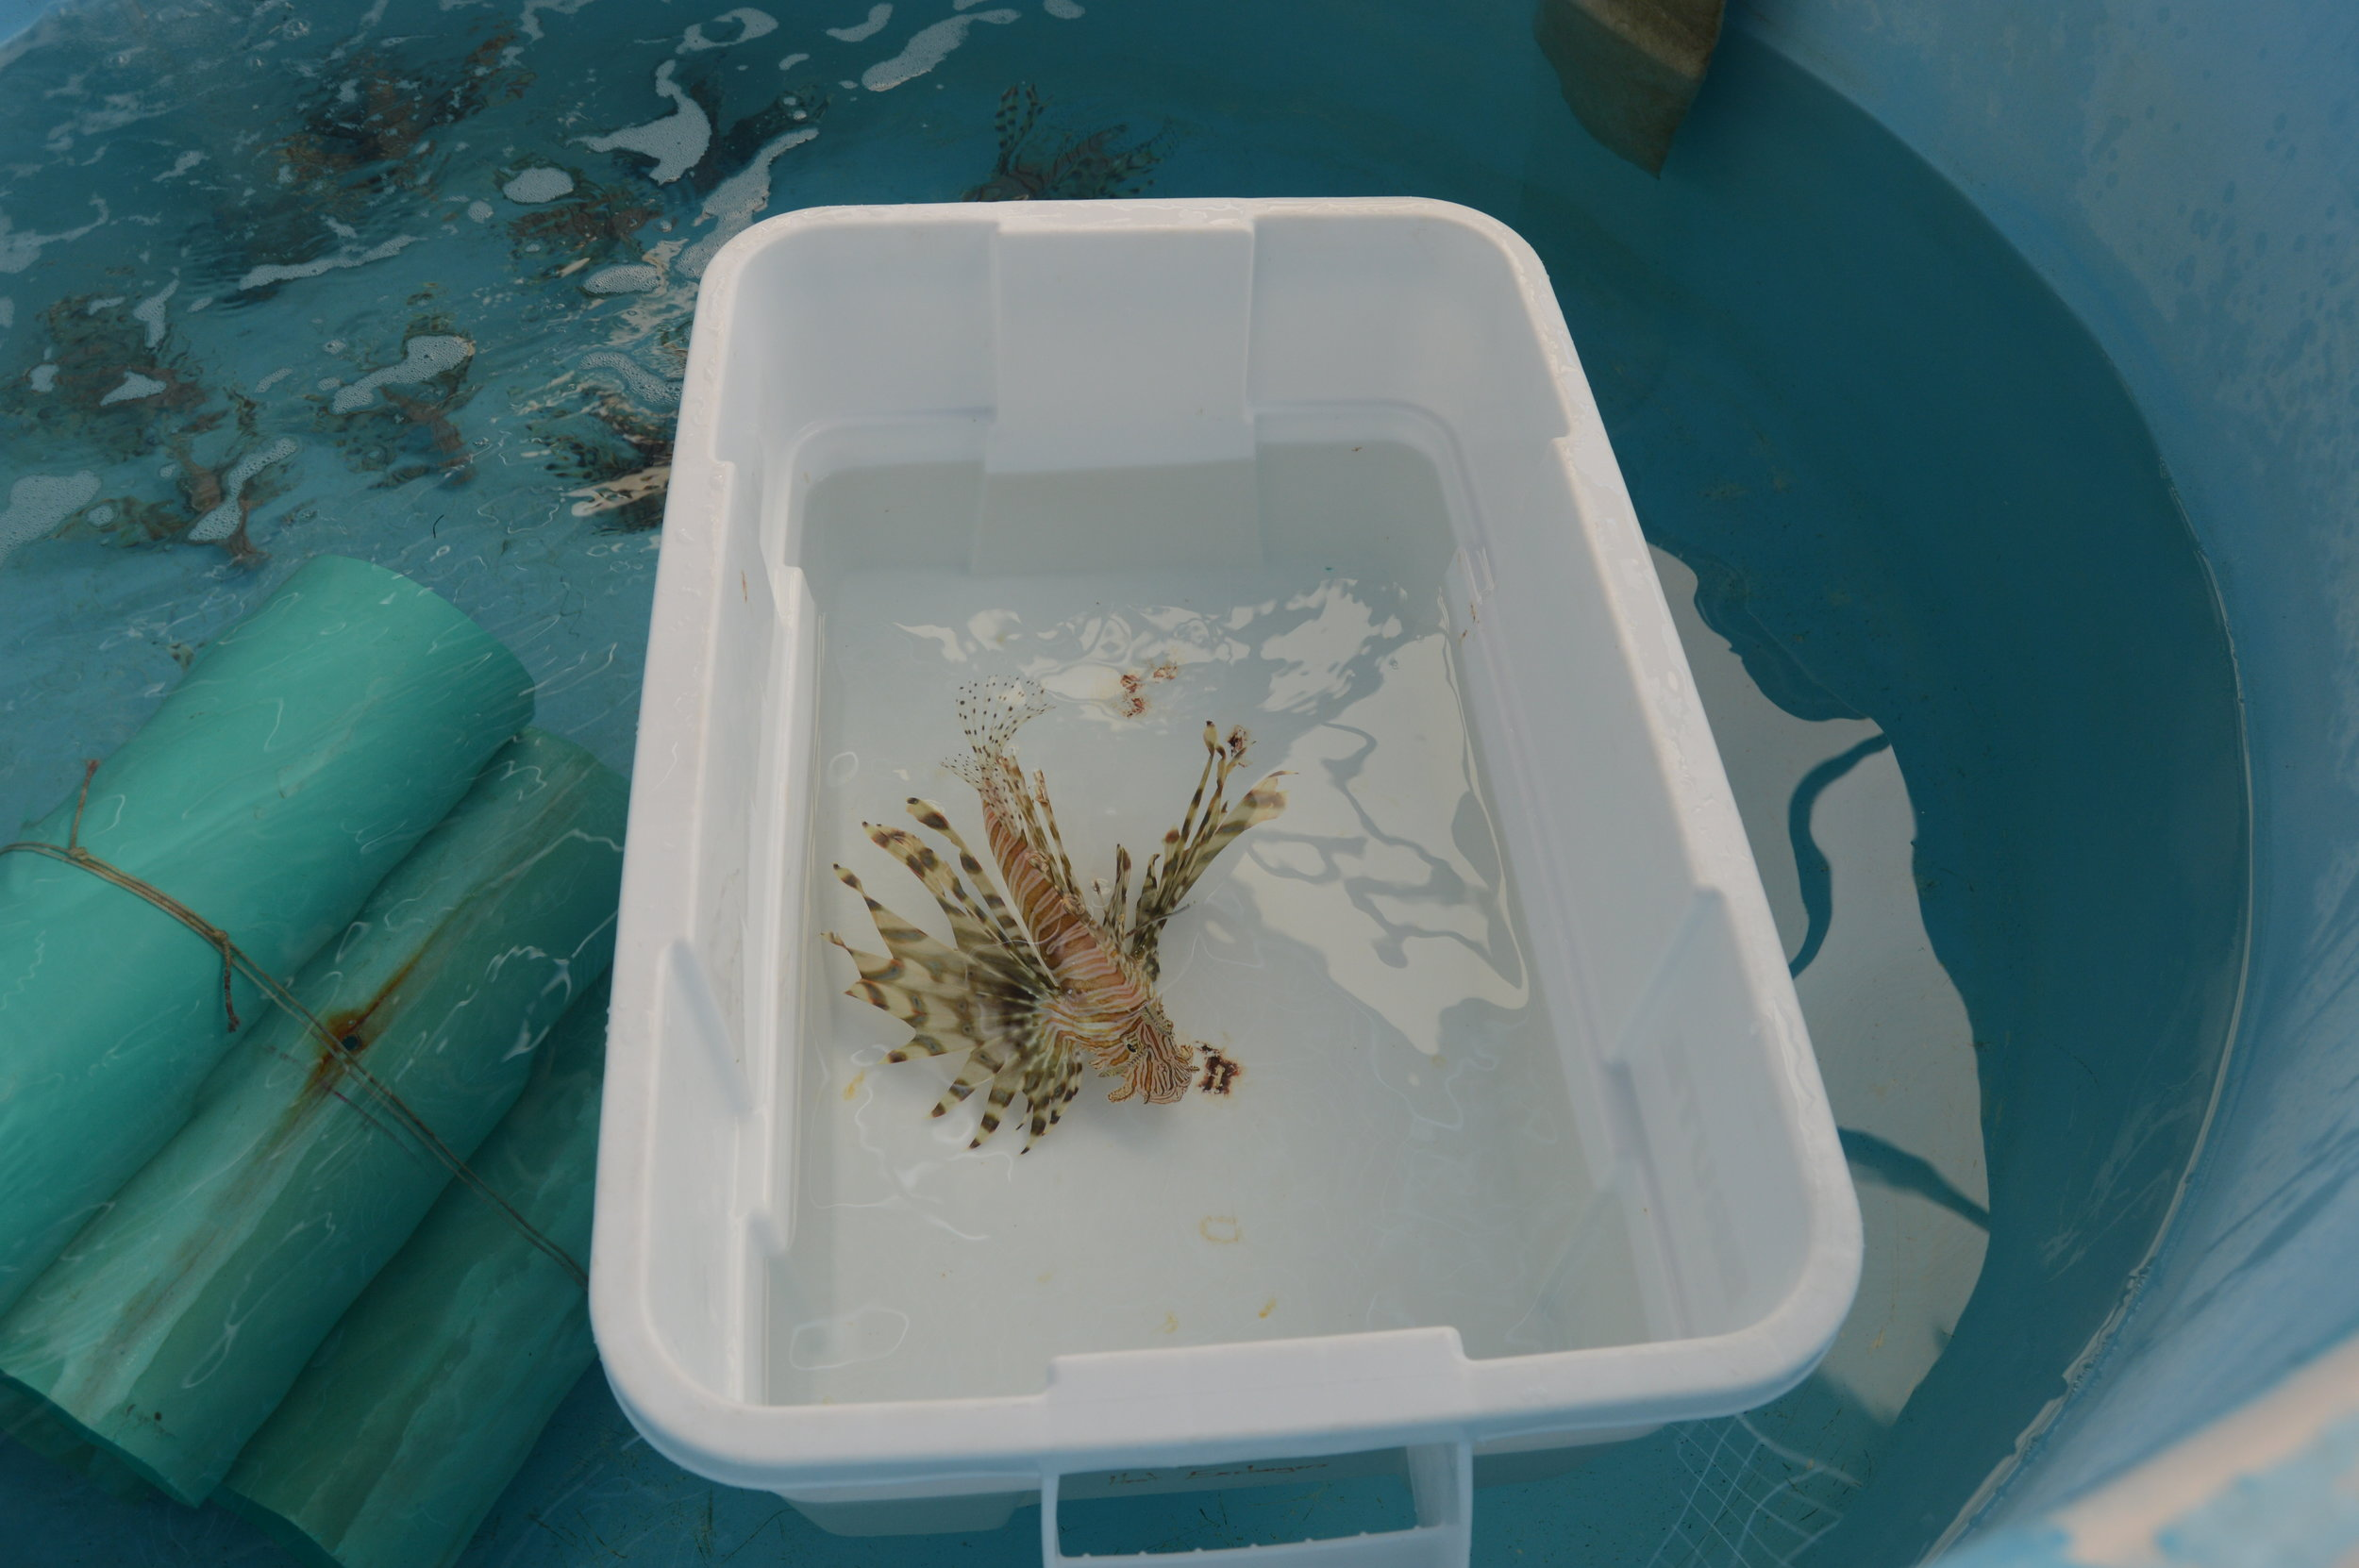 A captive lionfish is isolated in a white tote to ensure it is fed the correct amount of fish.